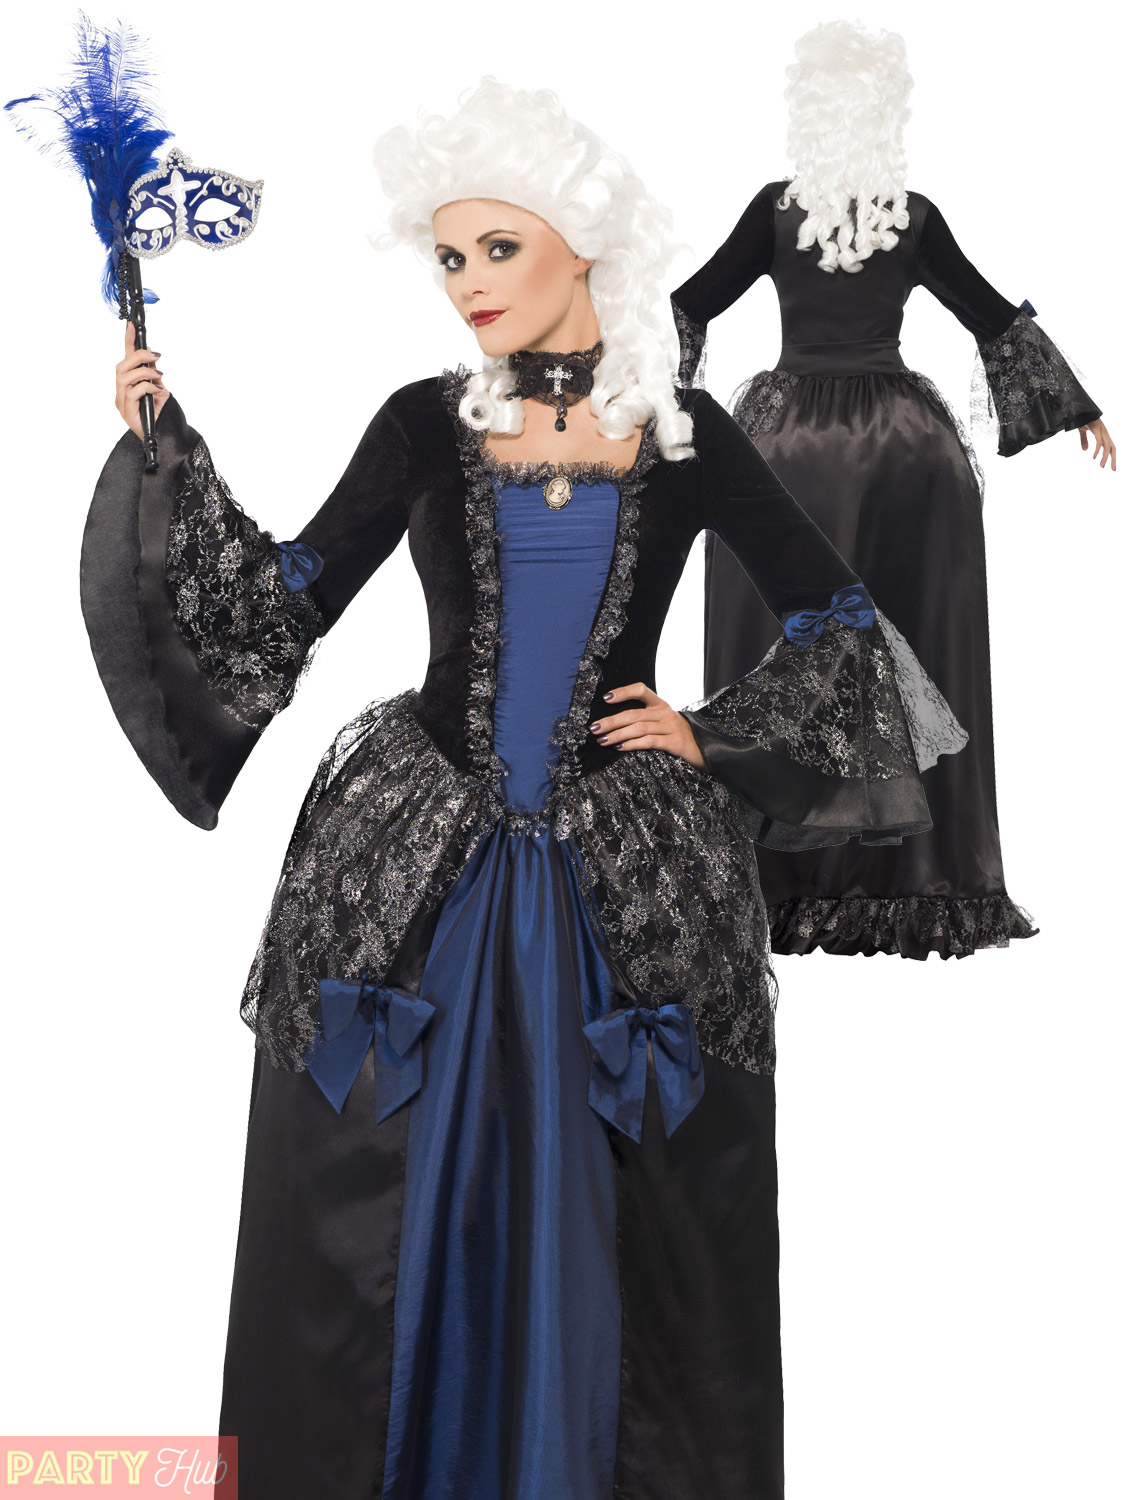 Ladies Halloween Masquerade Costume Womens Baroque Beauty Fancy Dress Outfit | eBay